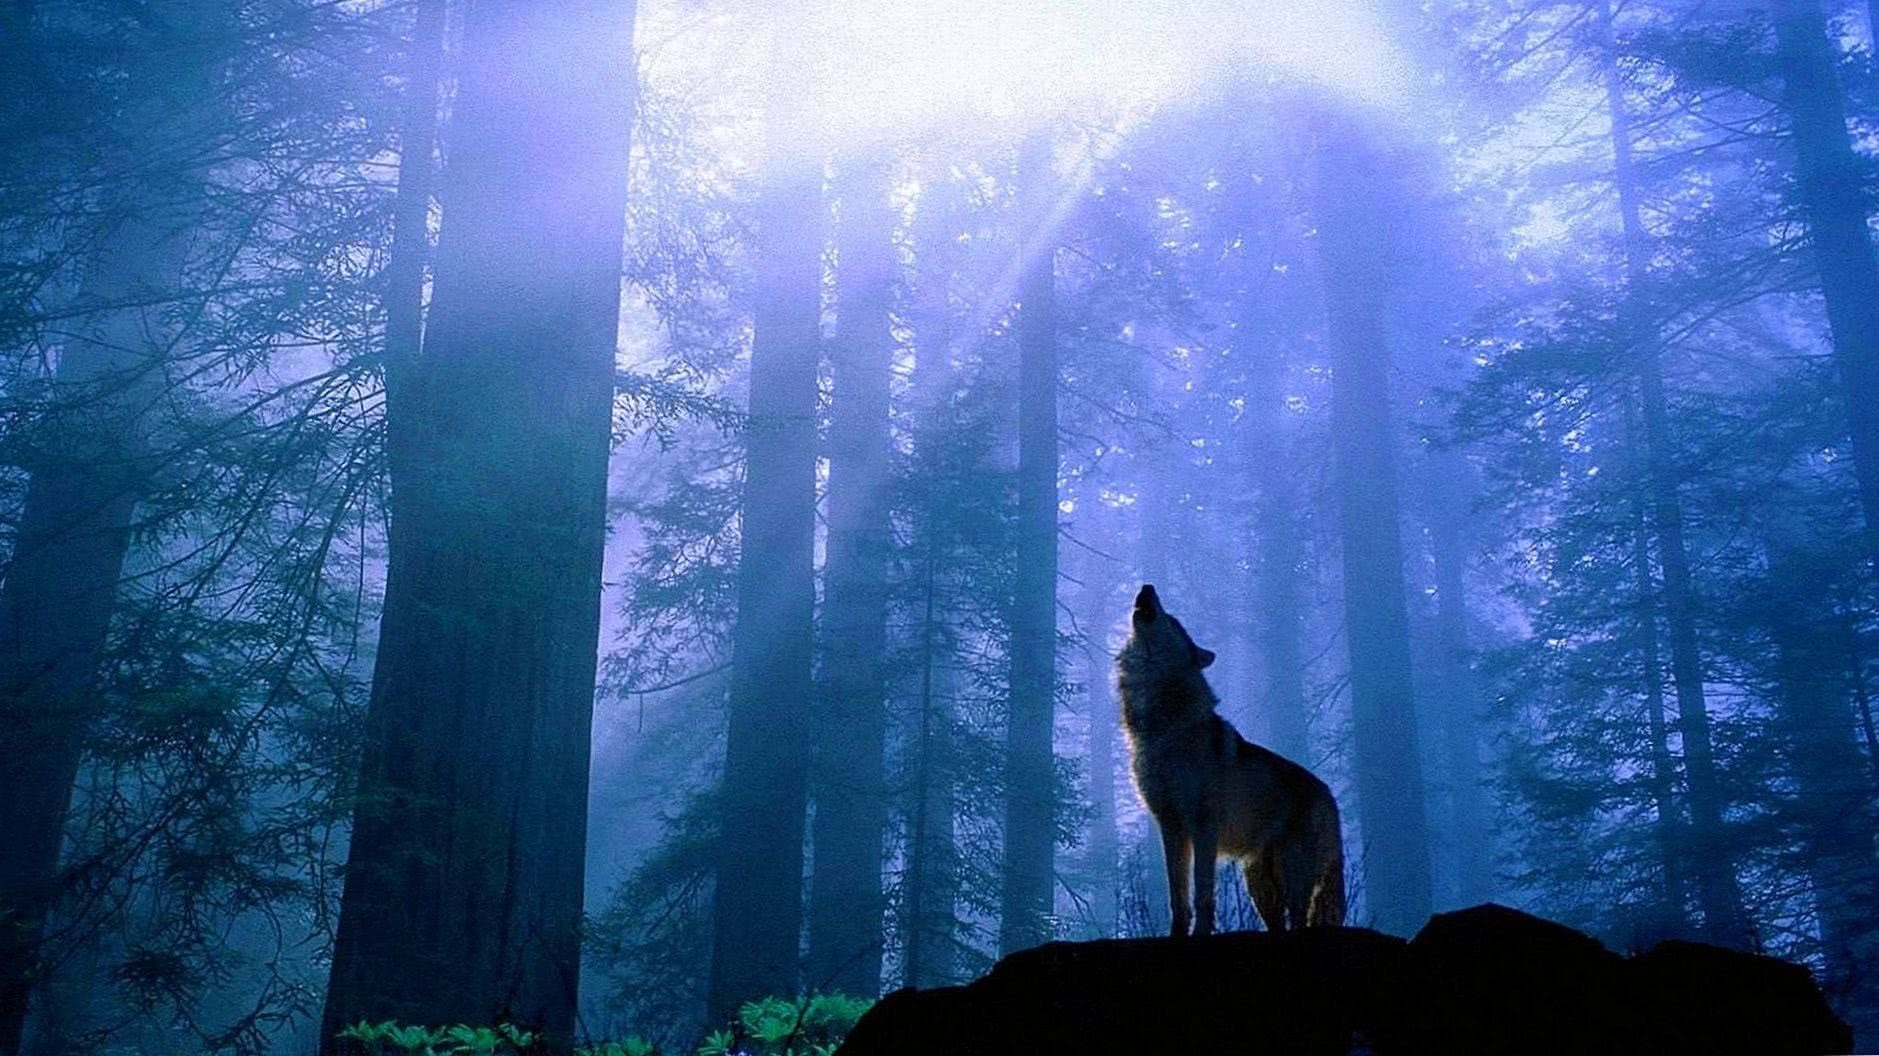 Wolf HD Wallpaper 1080p For Mobile